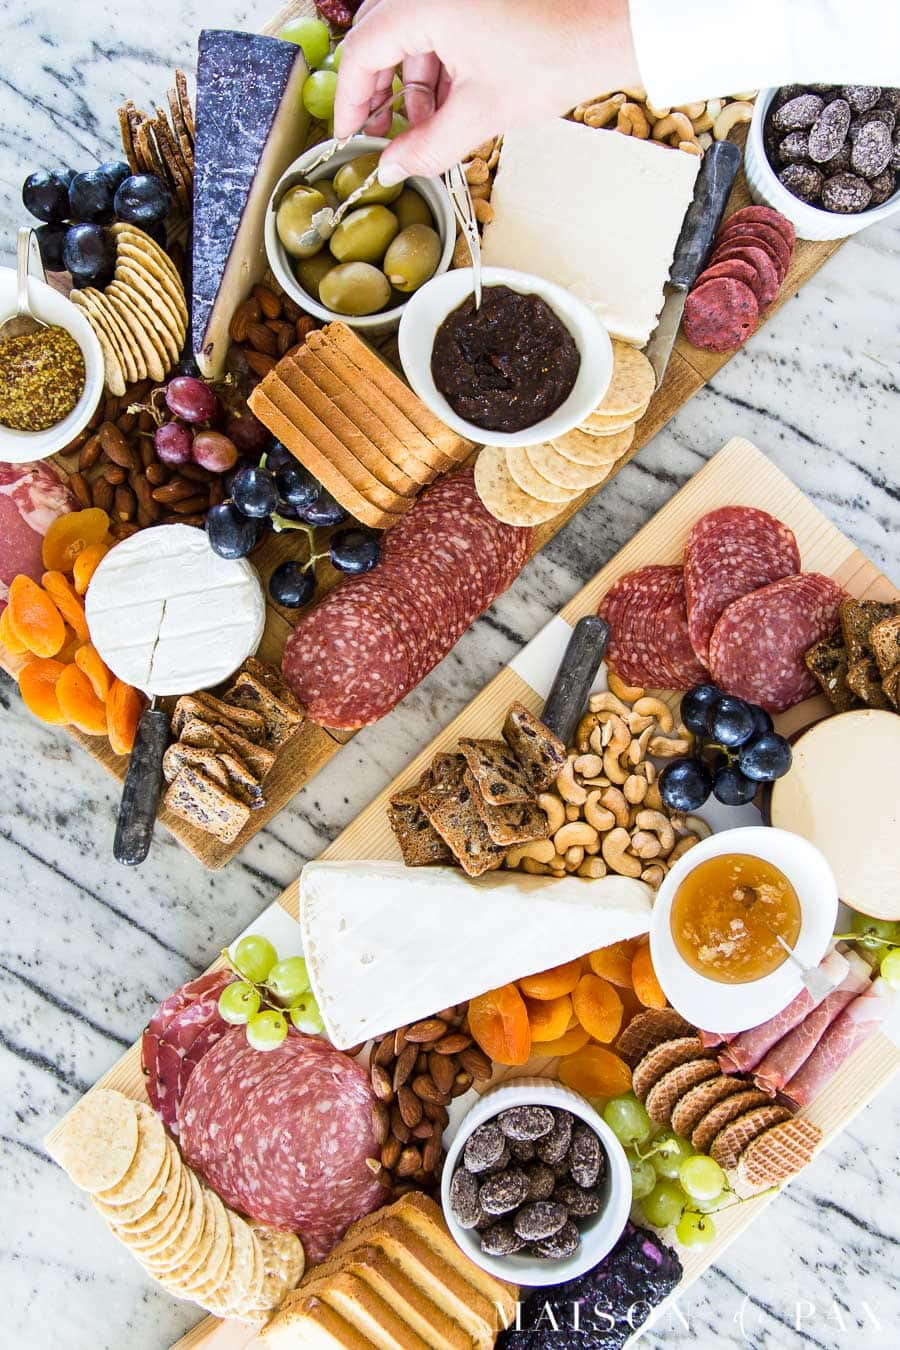 incredible diy charcuterie boards inspired by authentic antique french bread boards | Maison de Pax